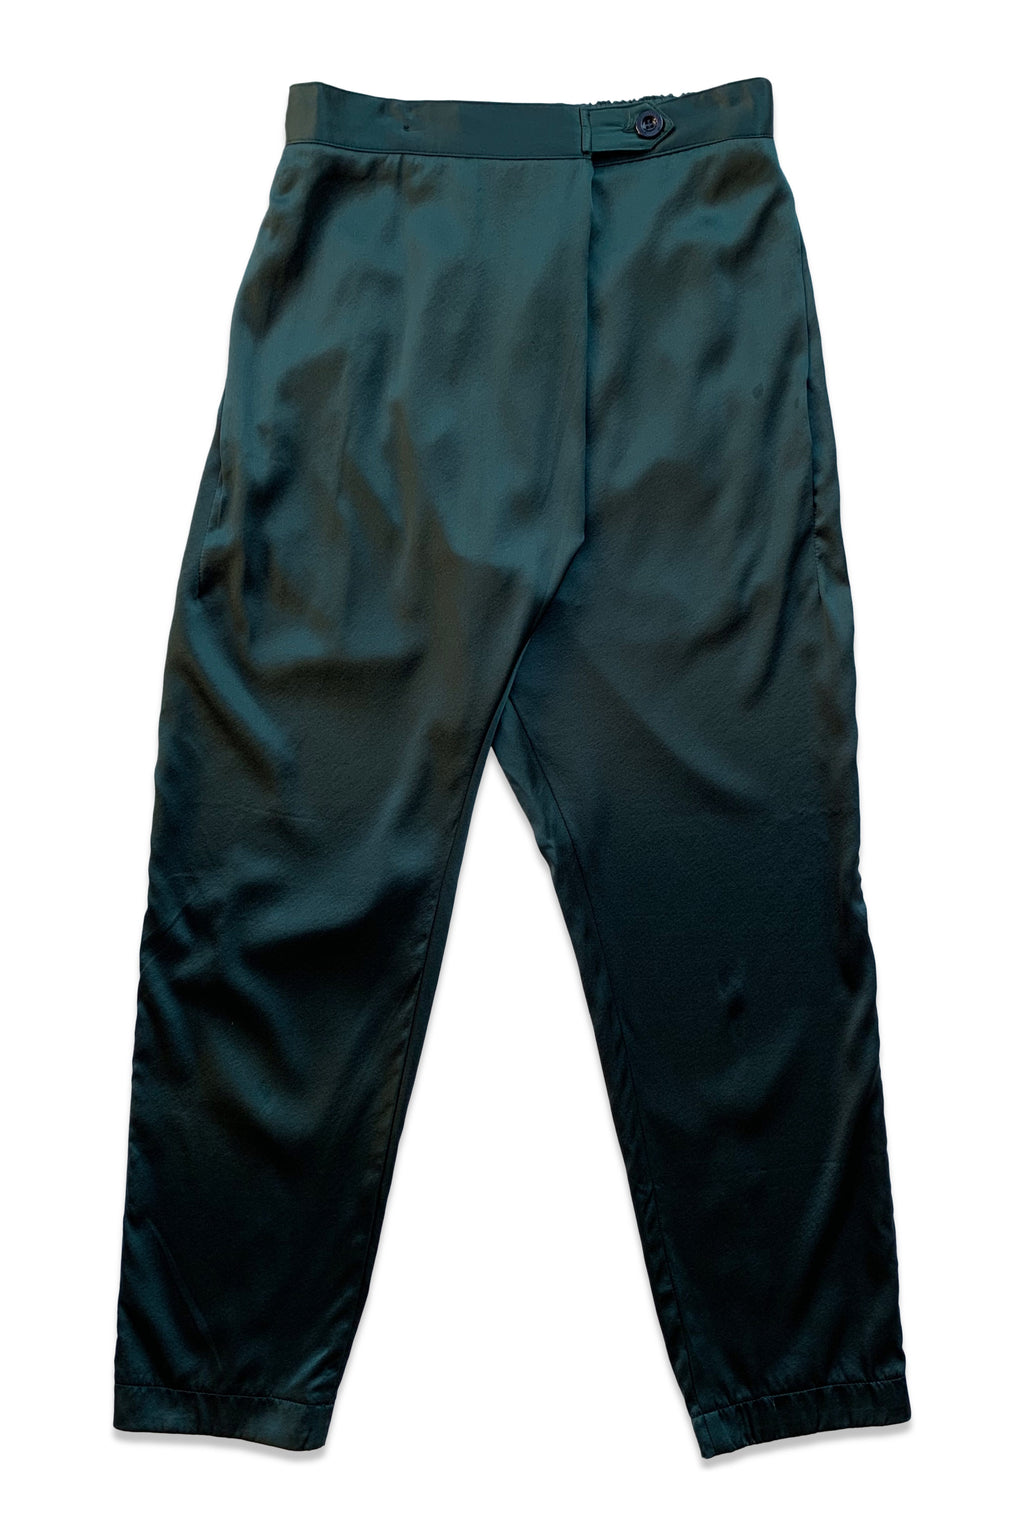 Souk Silk Pant in Emerald